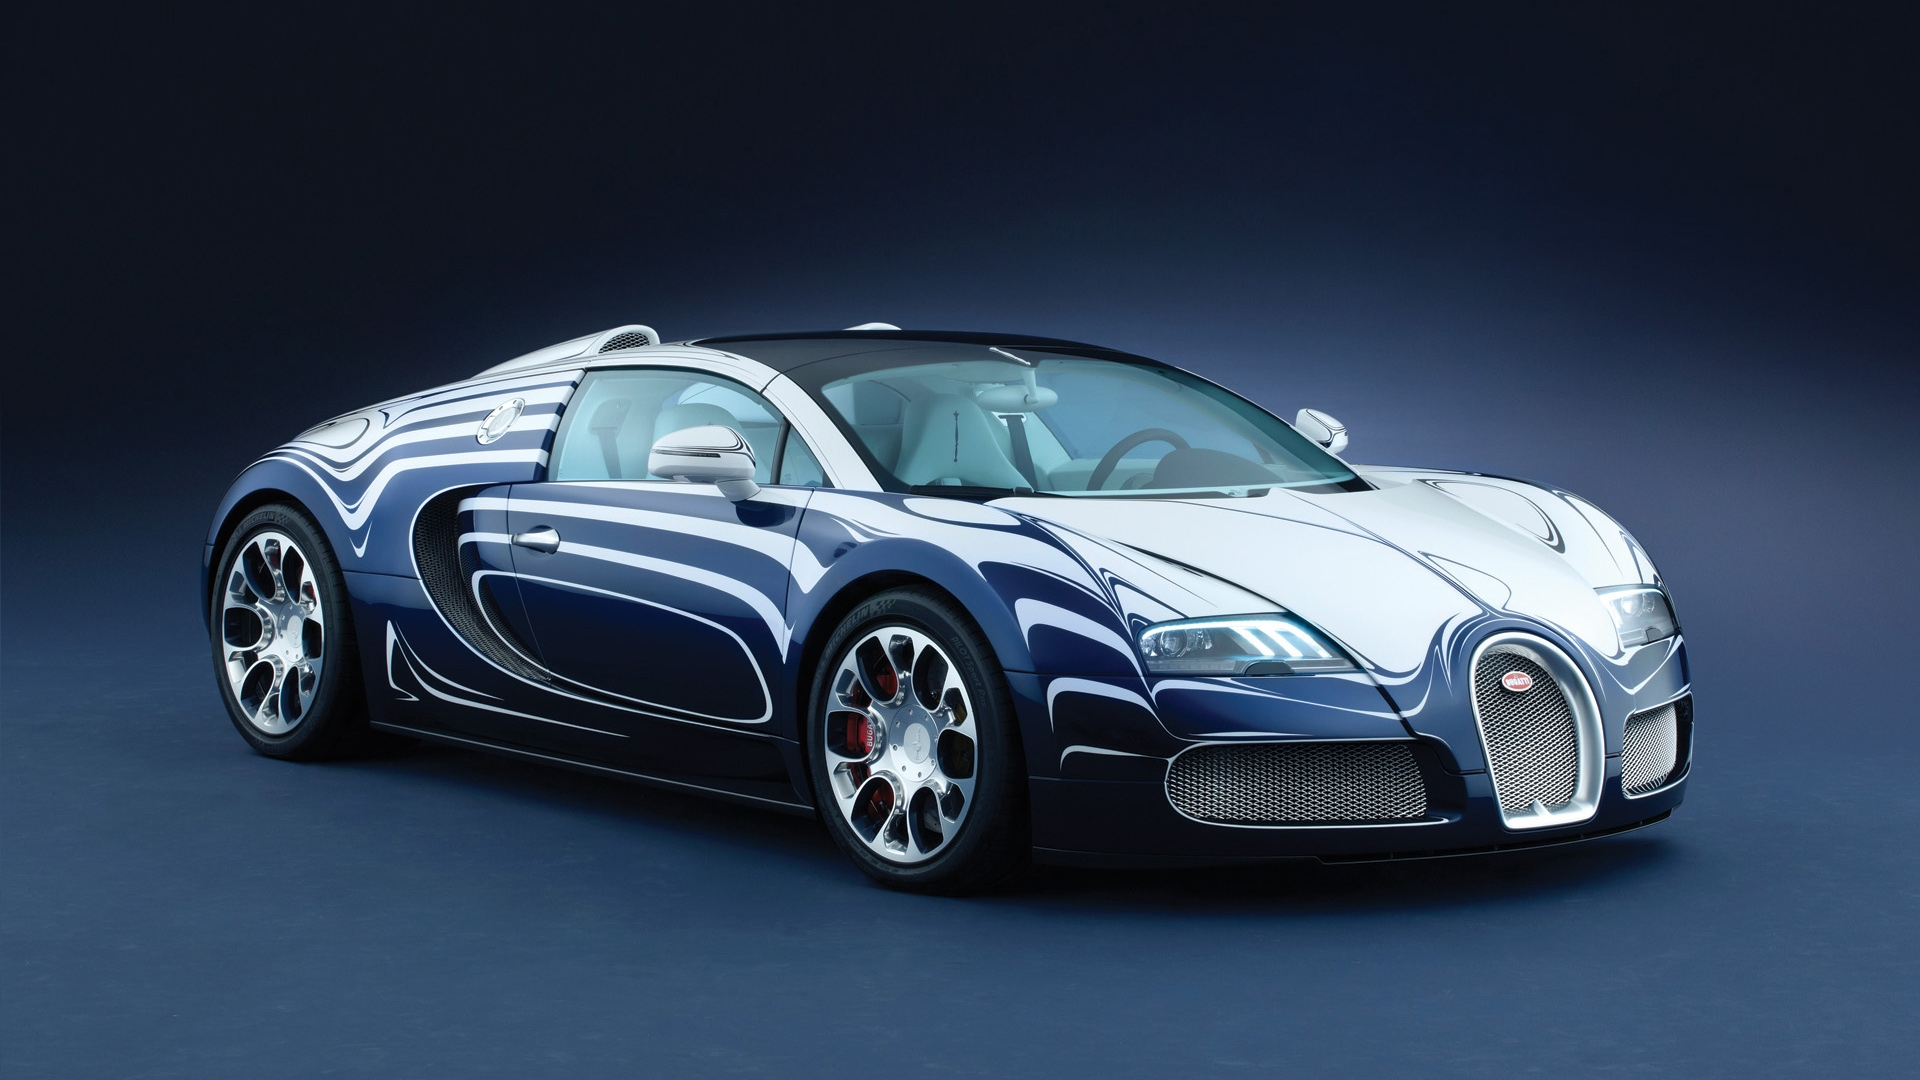 bugatti-veyron-grand-sport_wallpapers_30058_1920x1080 Stunning Bugatti Veyron Price In Brazil Cars Trend